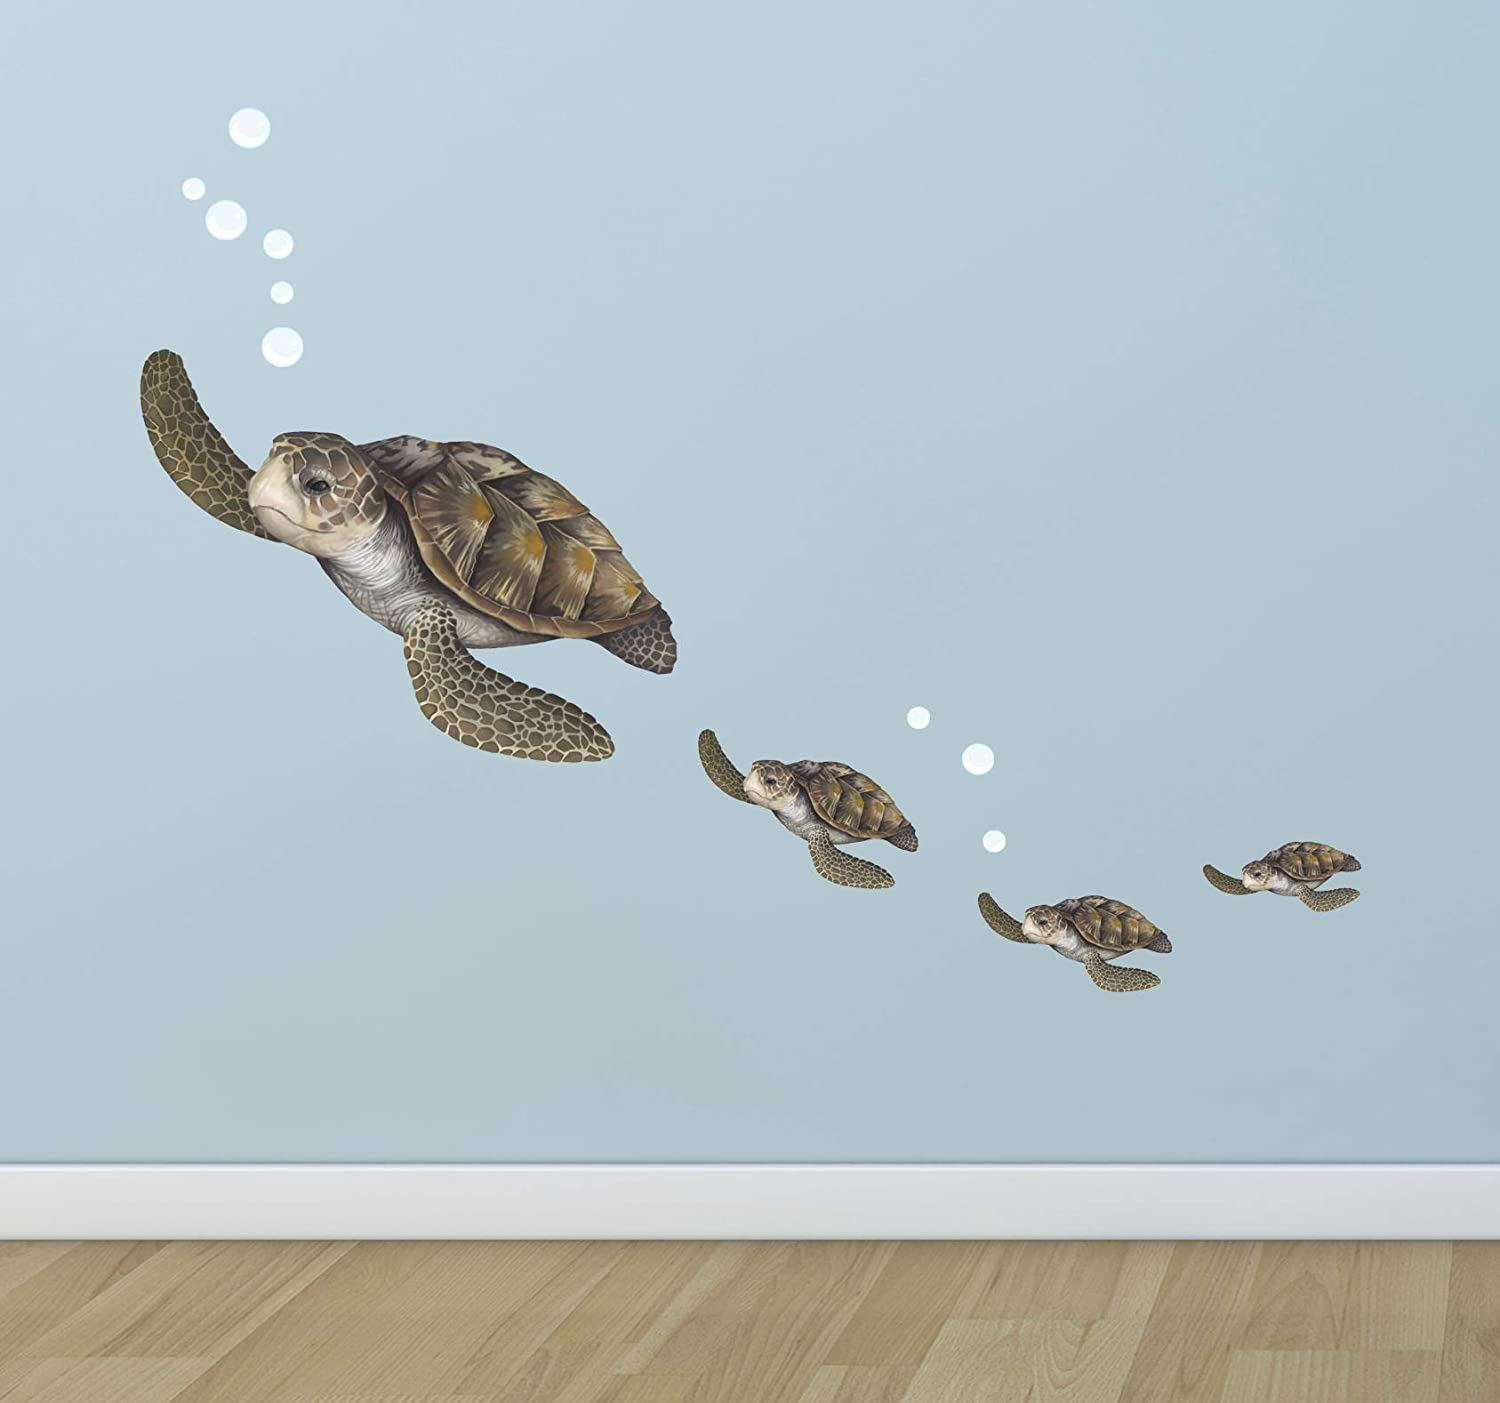 TURTLE ON BEACH BACKGROUND WALL STICKER ROOM DECORATION DECAL MURAL A CLASS